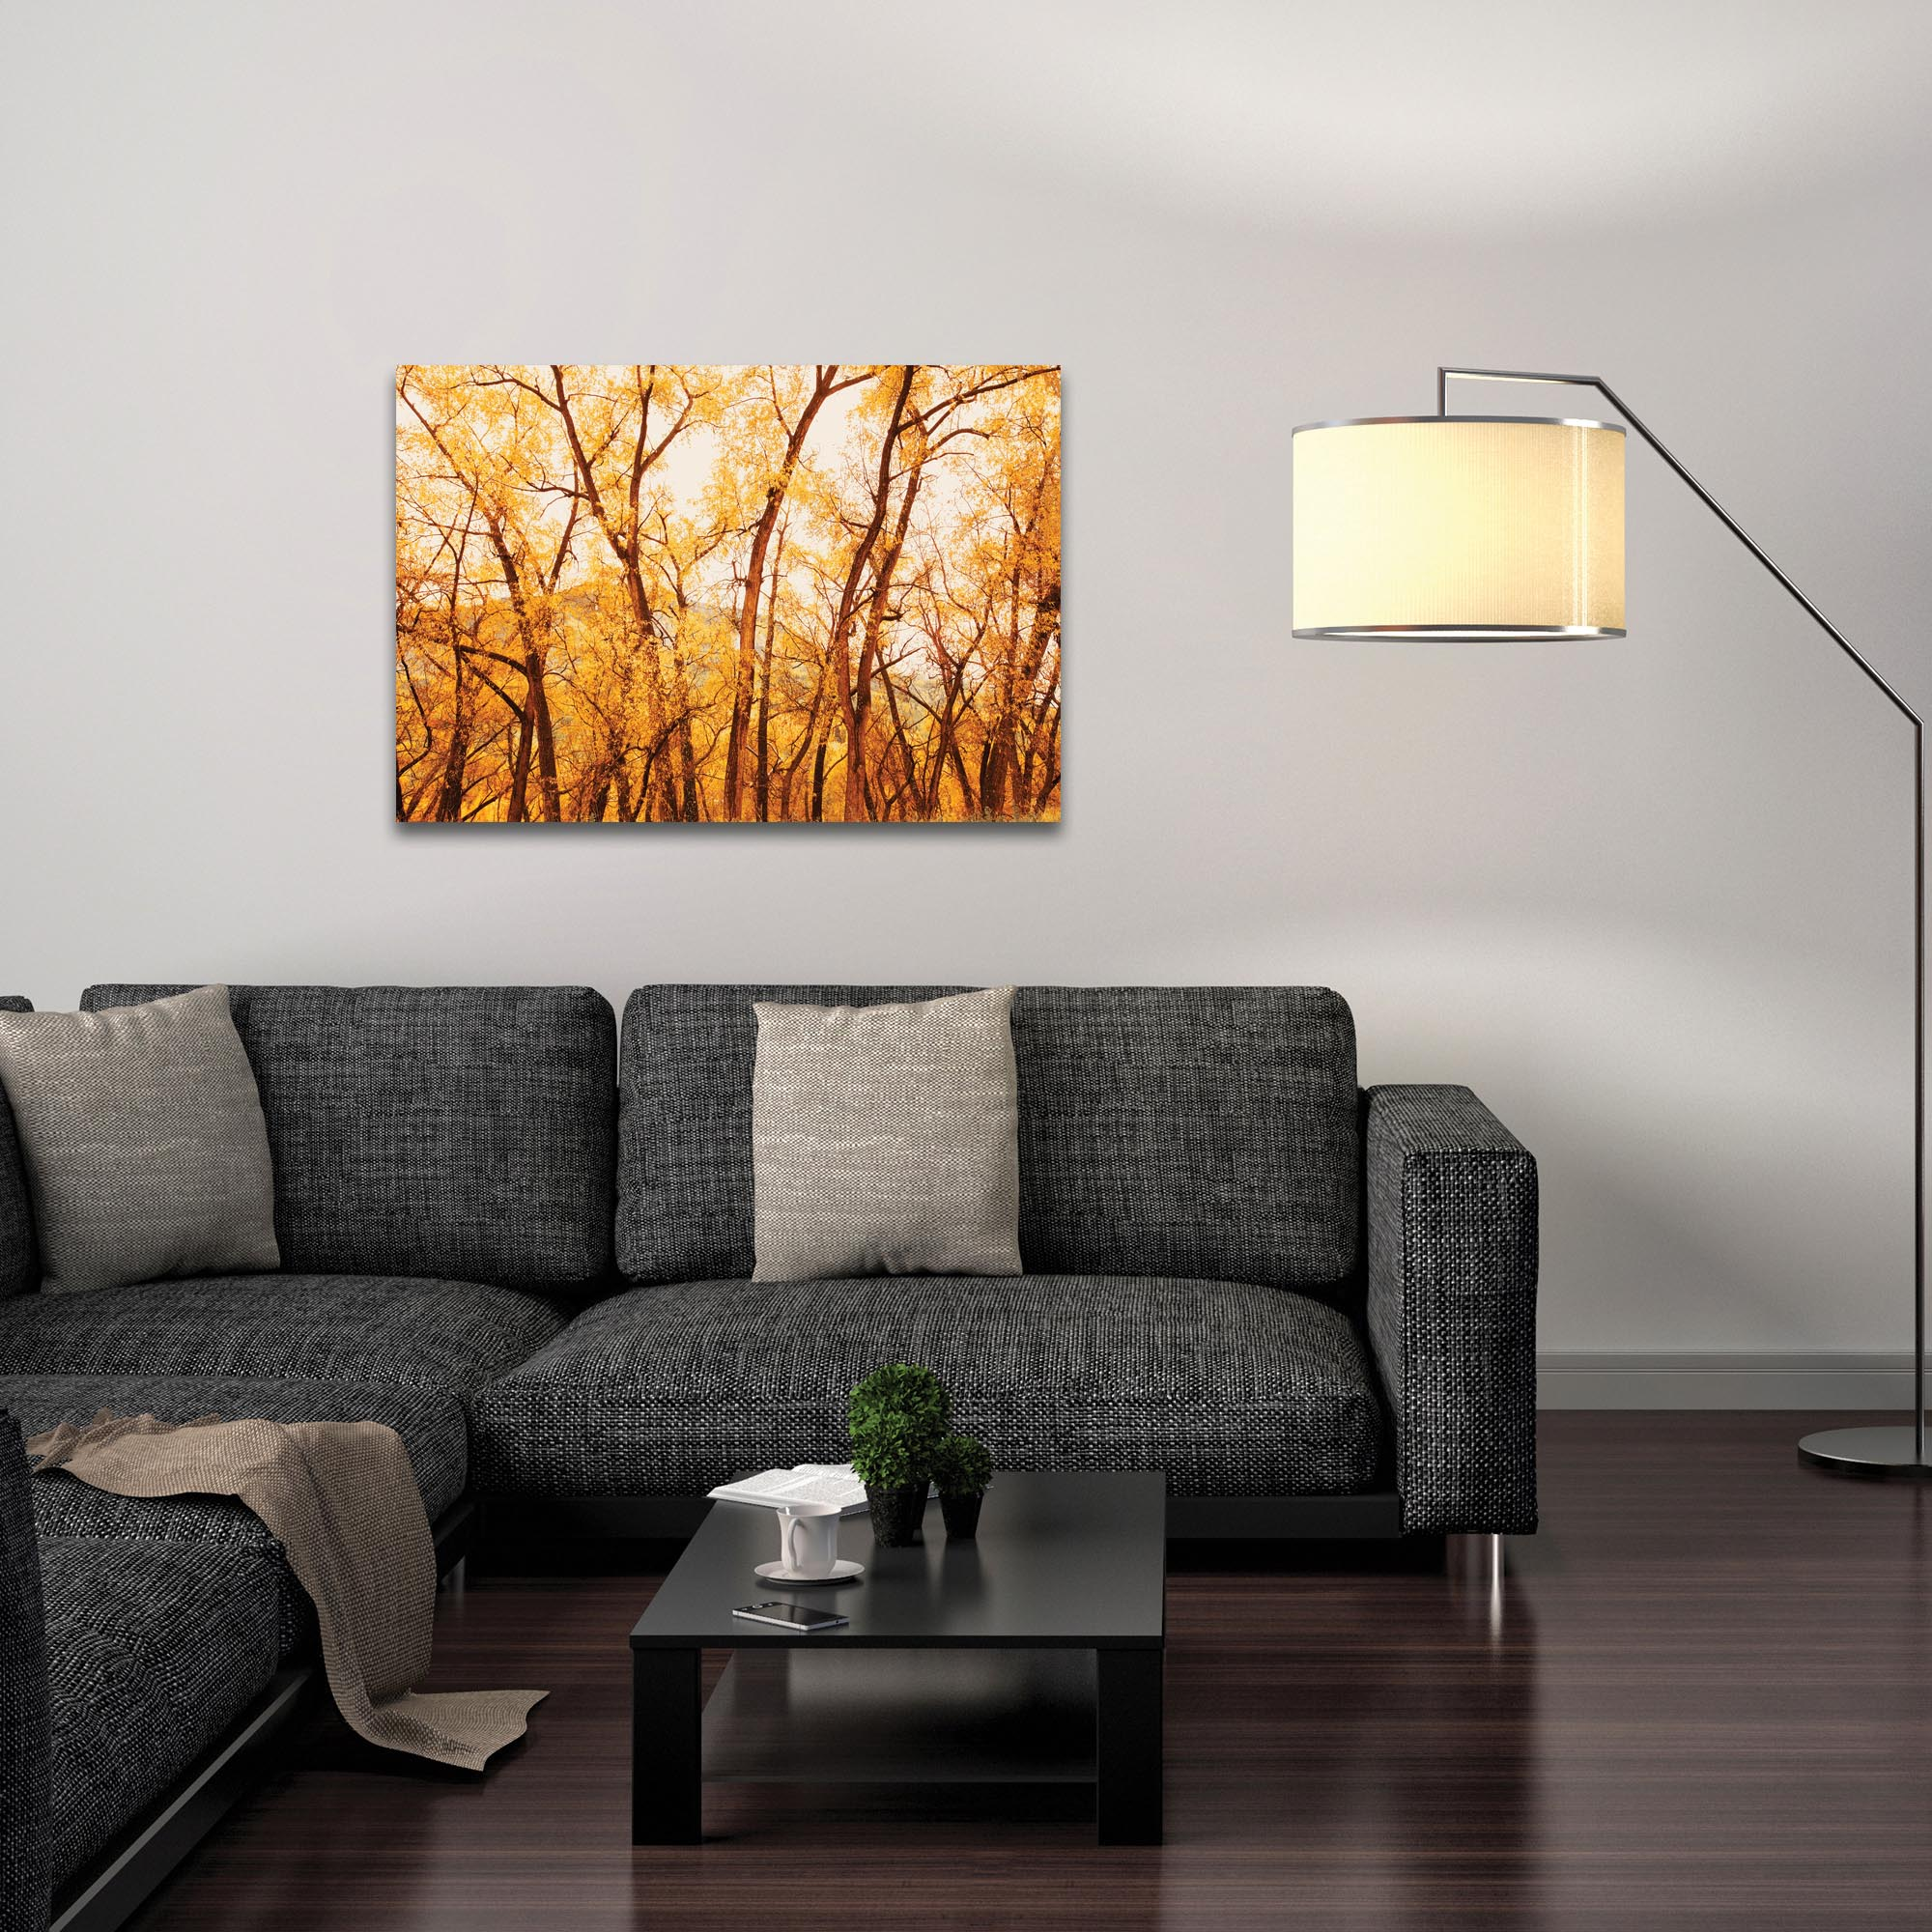 Landscape Photography 'Fall Trees' - Autumn Nature Art on Metal or Plexiglass - Lifestyle View